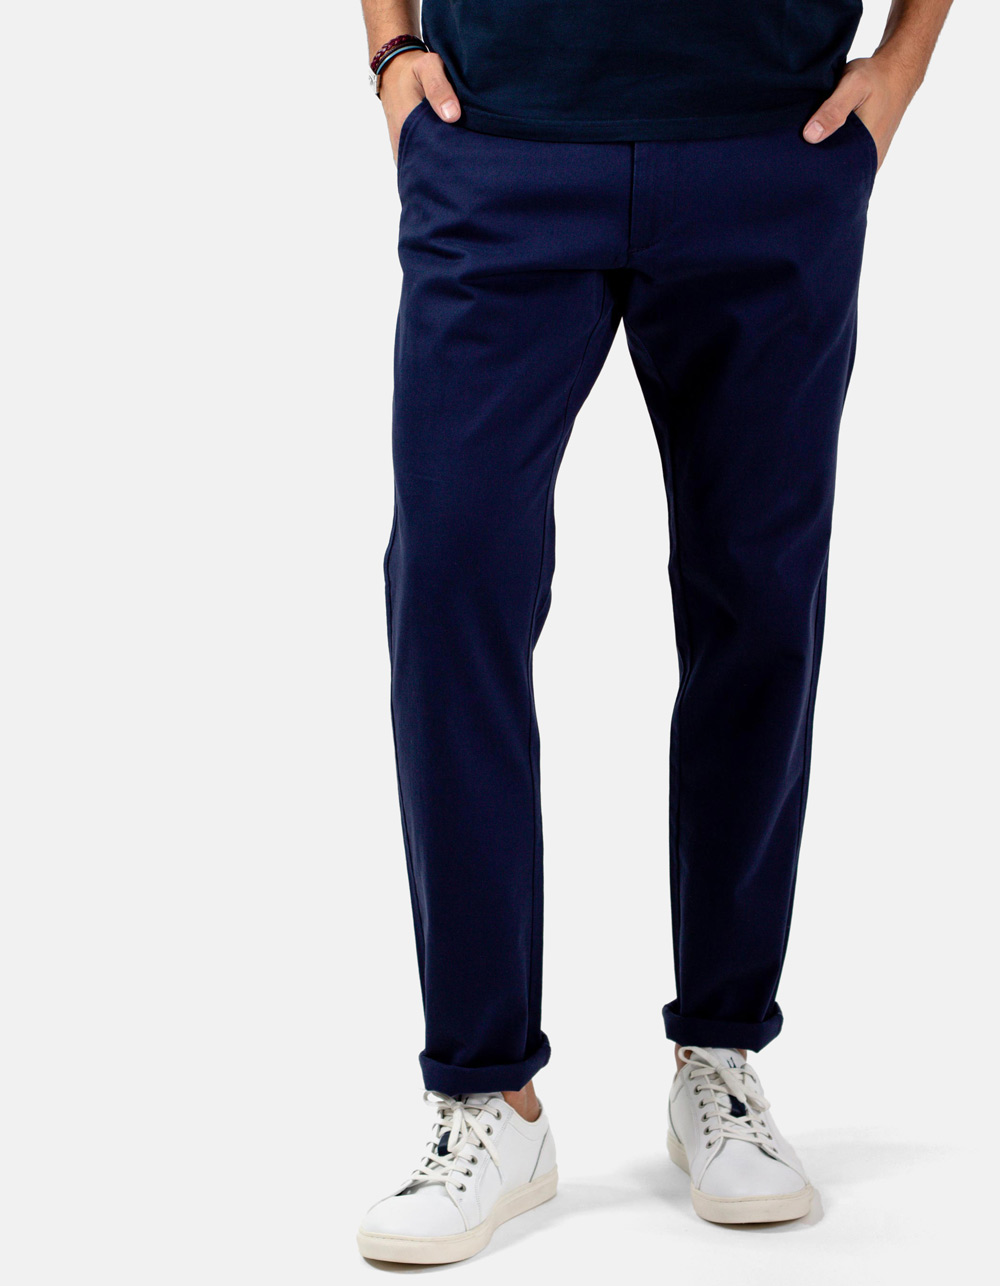 Basic chino blue trousers